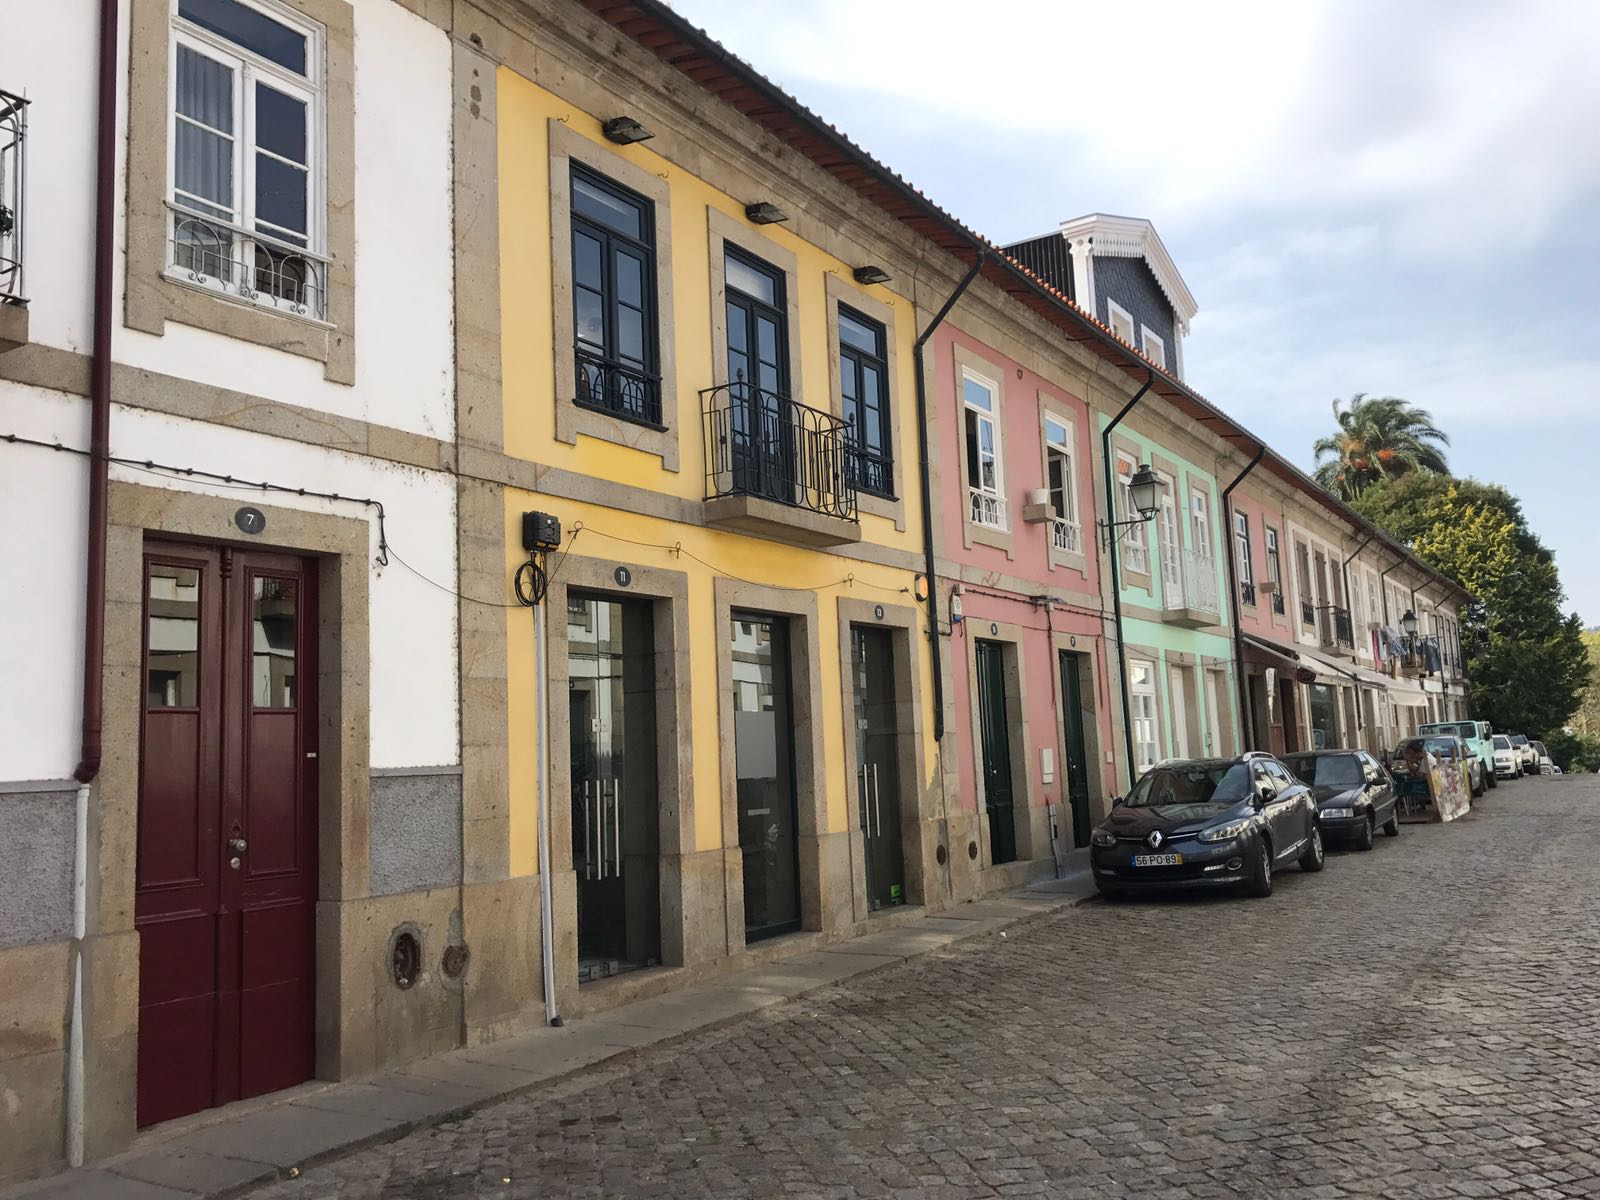 A colourful street in Ponte de Lima, with houses in white, pink, yellow and green